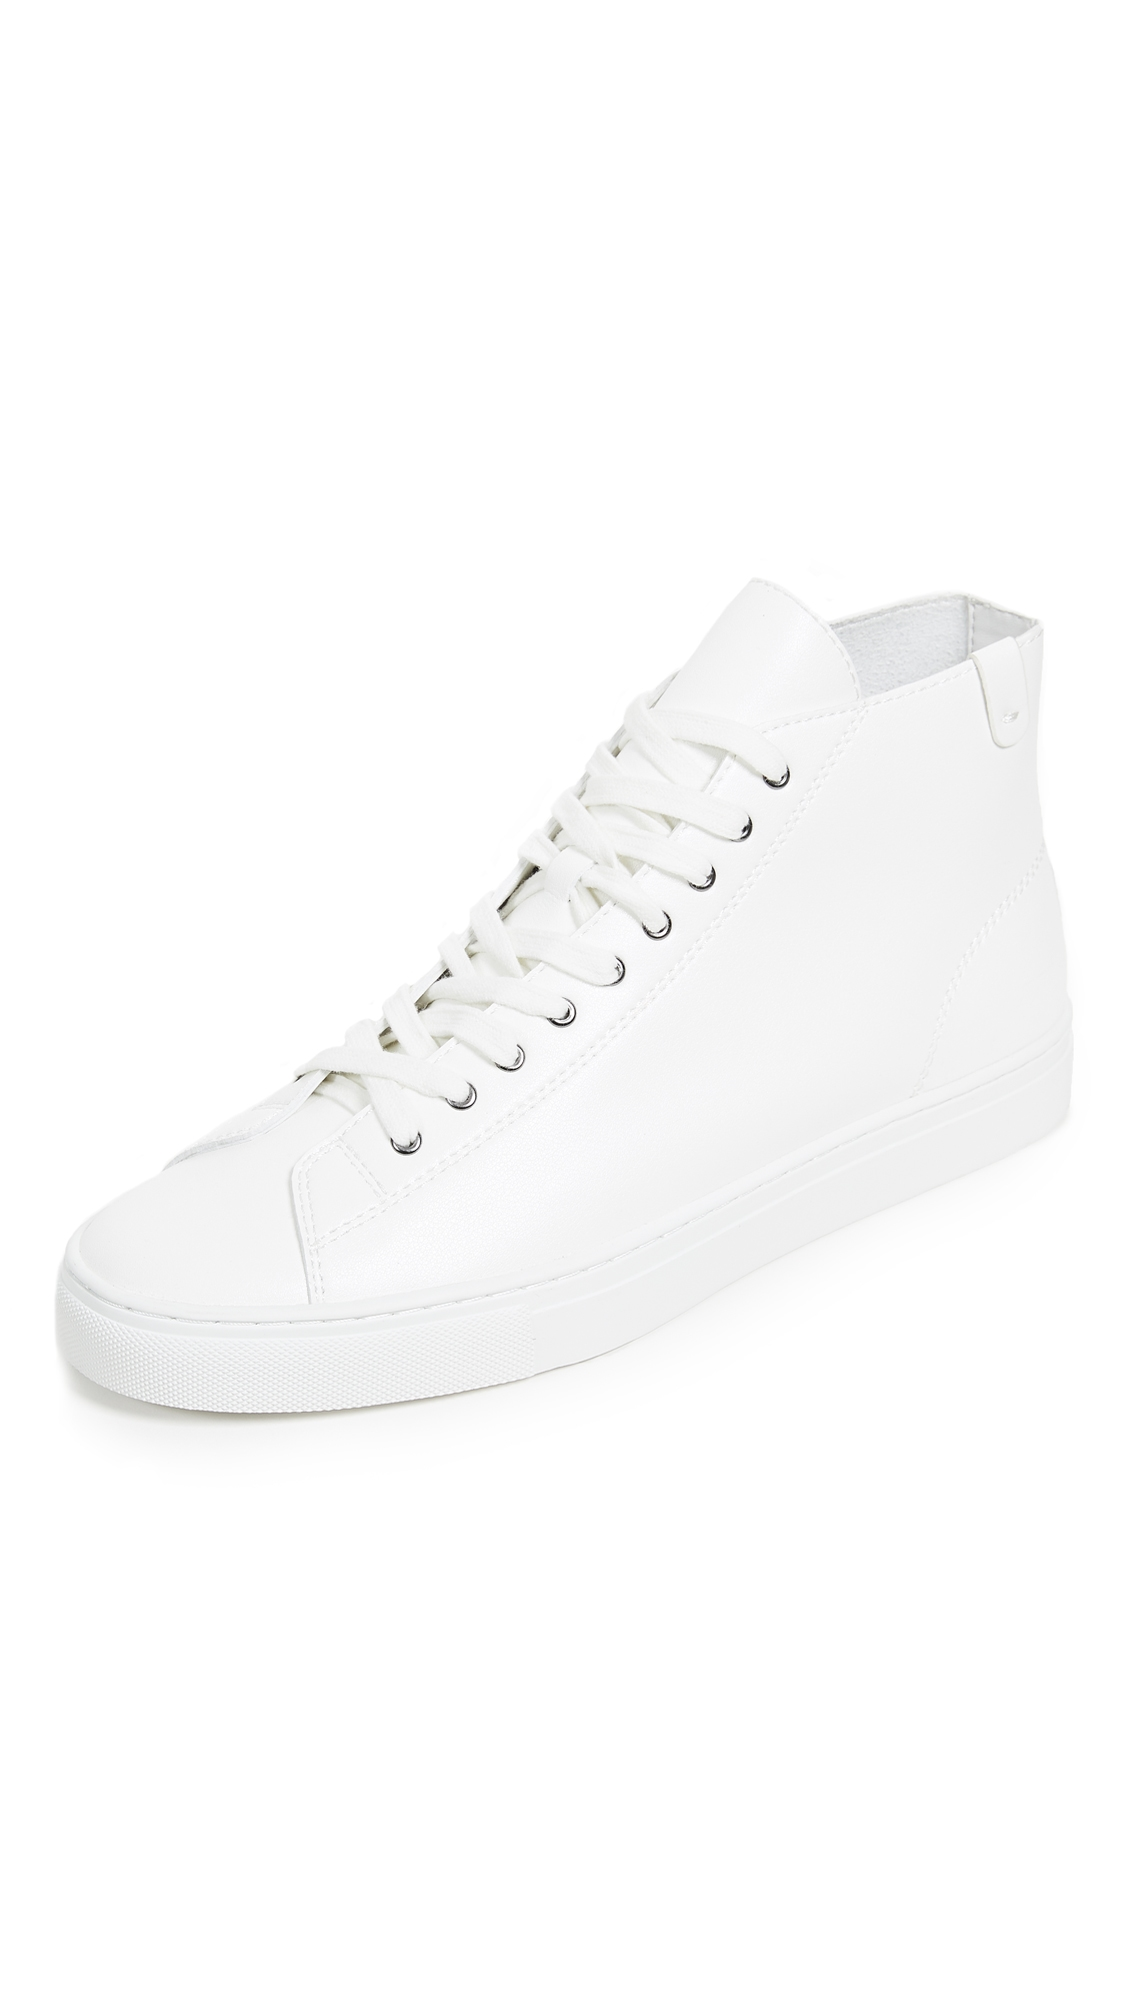 HOUSE OF FUTURE ORIGINAL HIGH TOP SNEAKERS